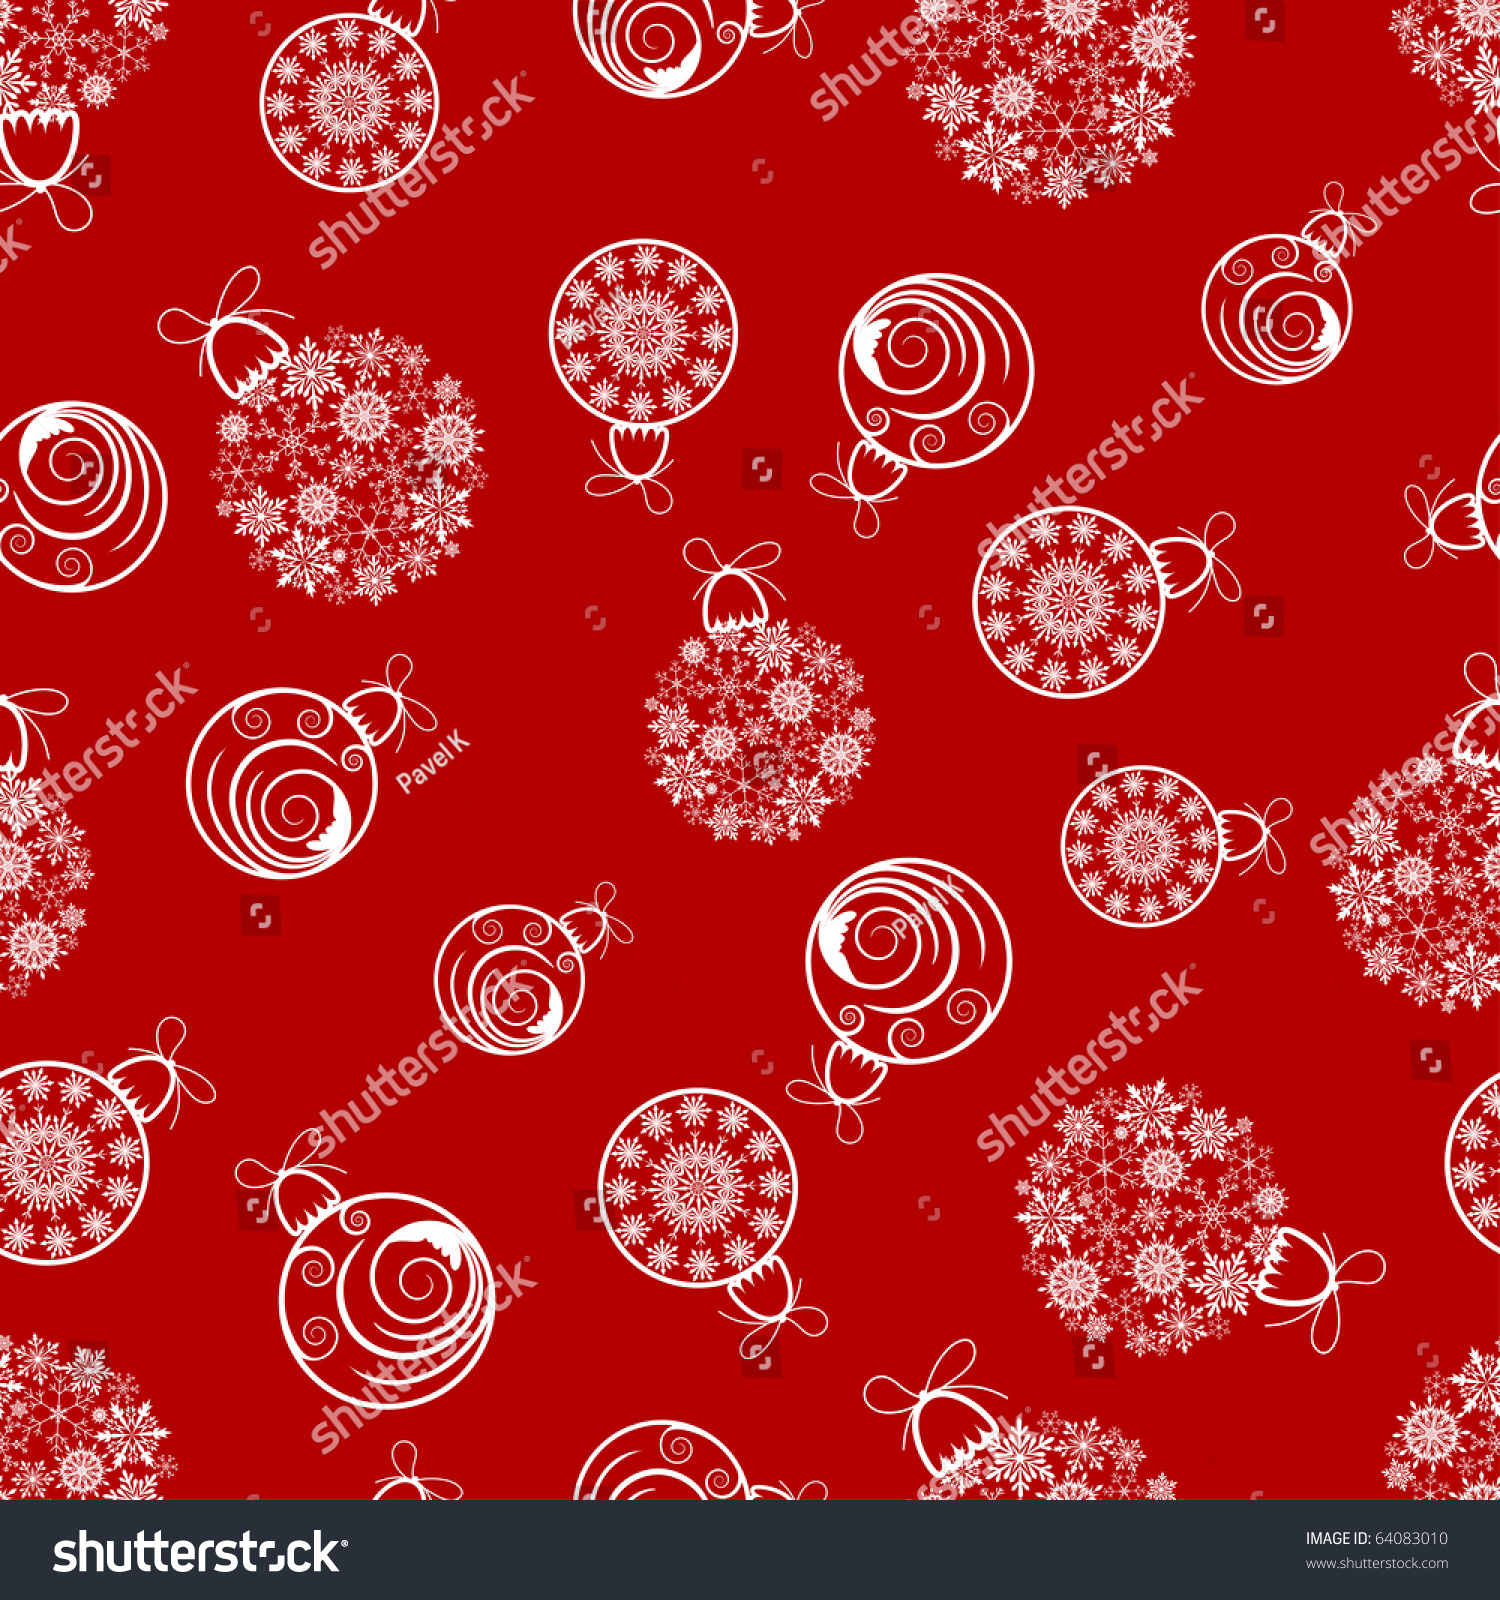 Beautiful vector christmas new year background for design use - Beautiful Vector Christmas New Year Seamless Background For Design Use